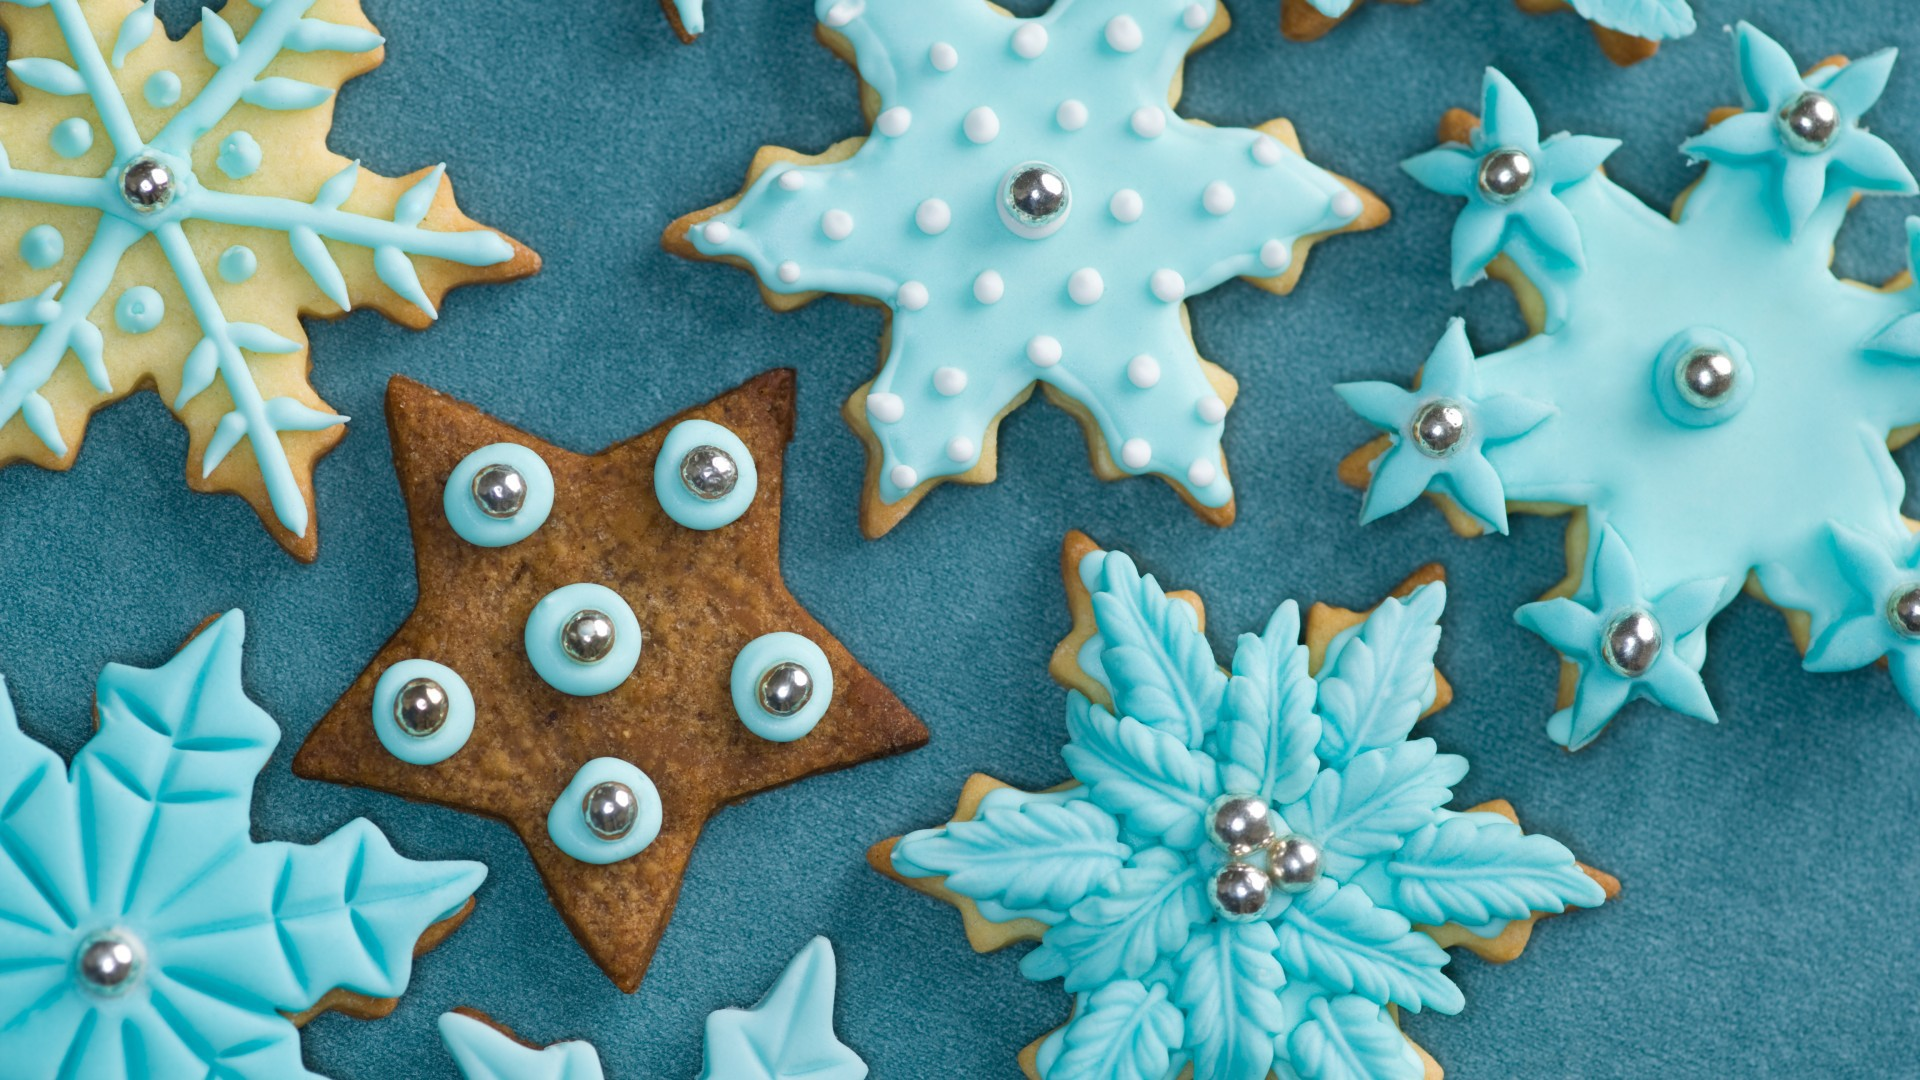 Christmas cookies wallpapers and images   wallpapers 1920x1080